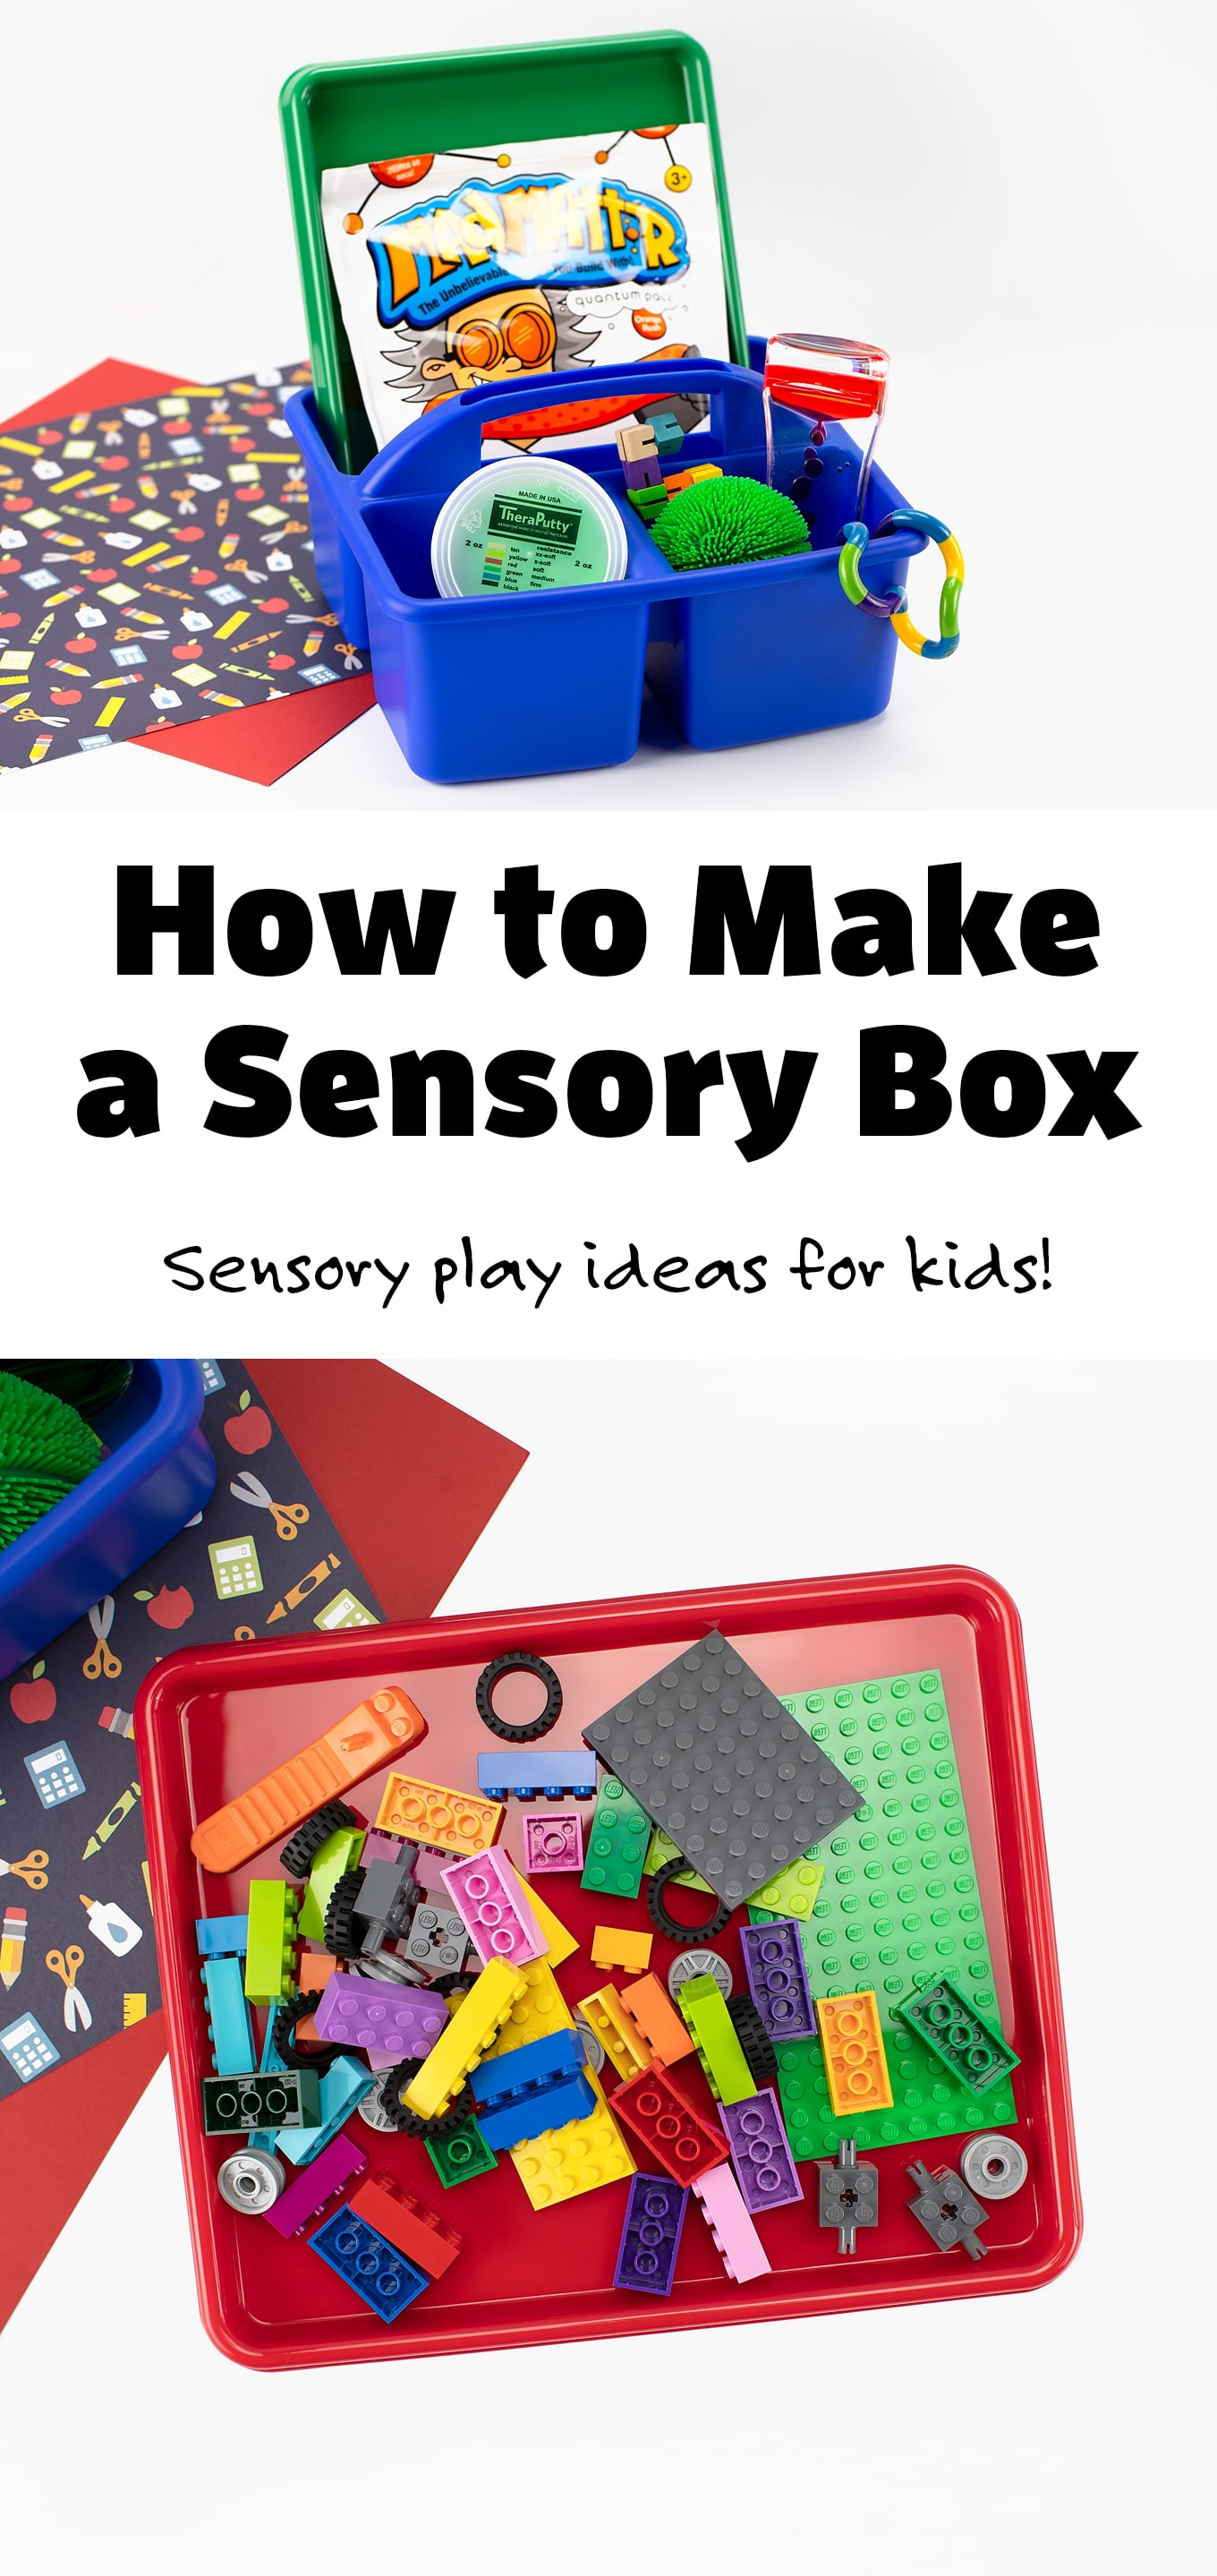 Learn how an individualized Sensory Box can help your child fulfill their sensory needs throughout their school day. #sensorybox #ideas #forkids #diy via @firefliesandmudpies